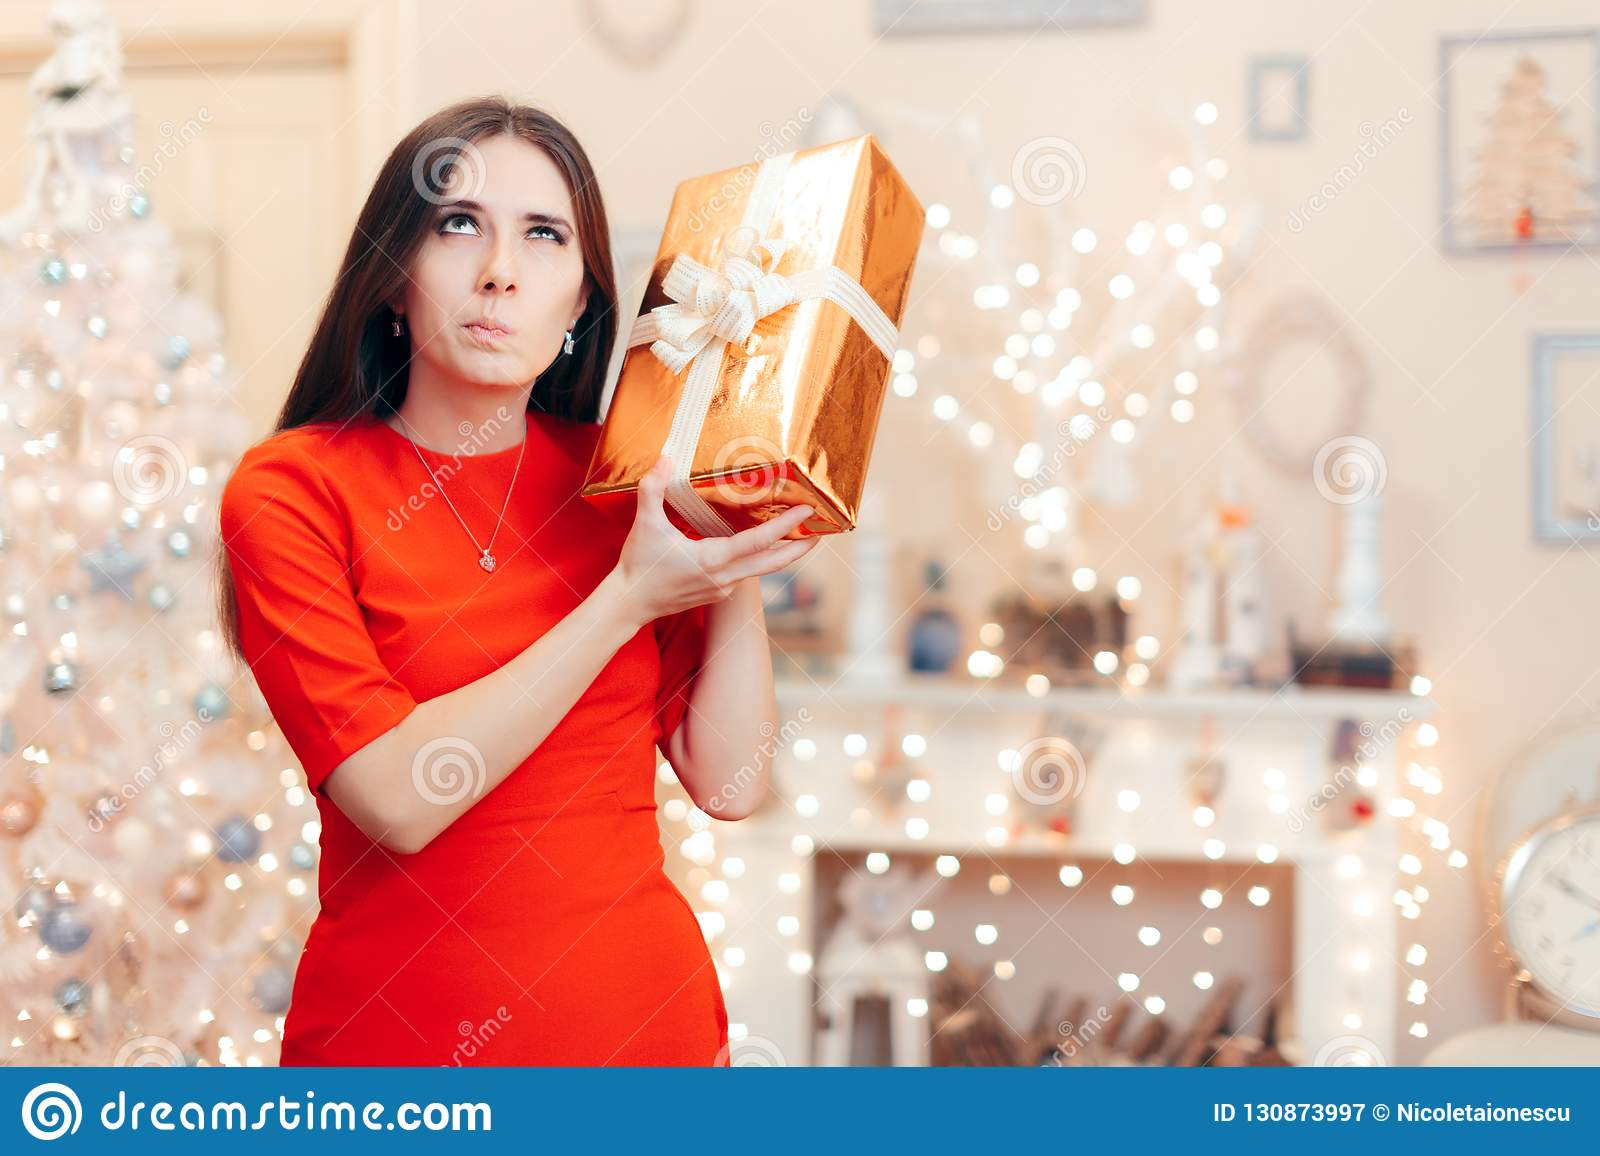 Curious Woman Checking Christmas Gift in the Morning